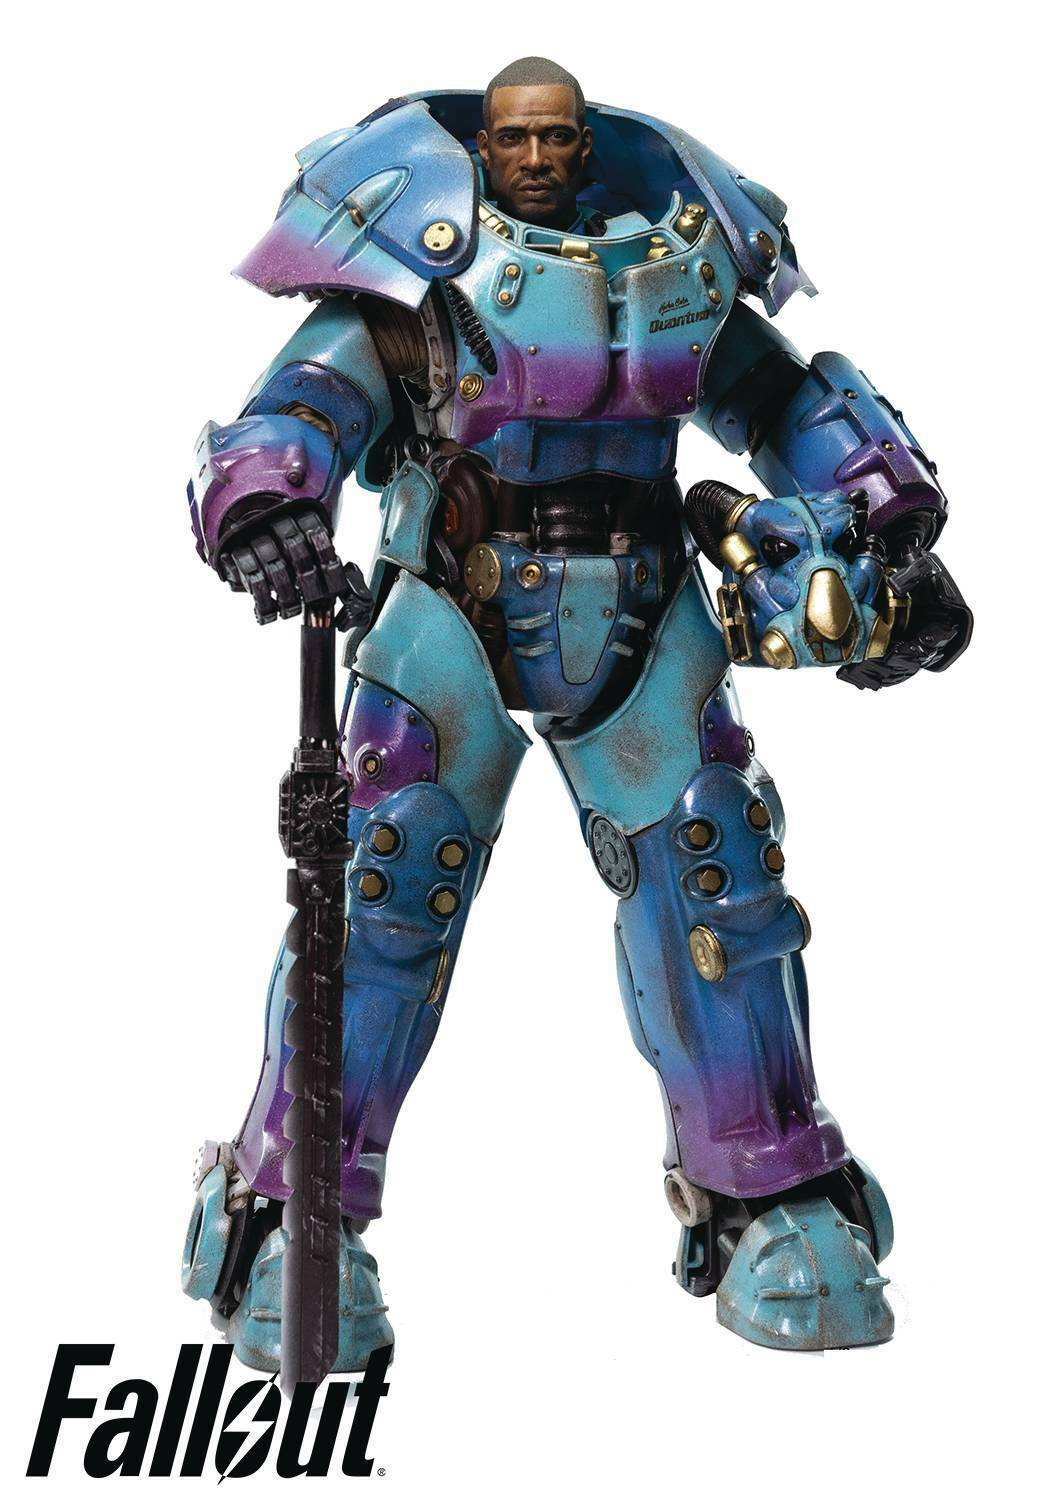 FALLOUT X-01 POWER ARMOR QUANTUM ONE 6th SCALE ACTION FIGURE